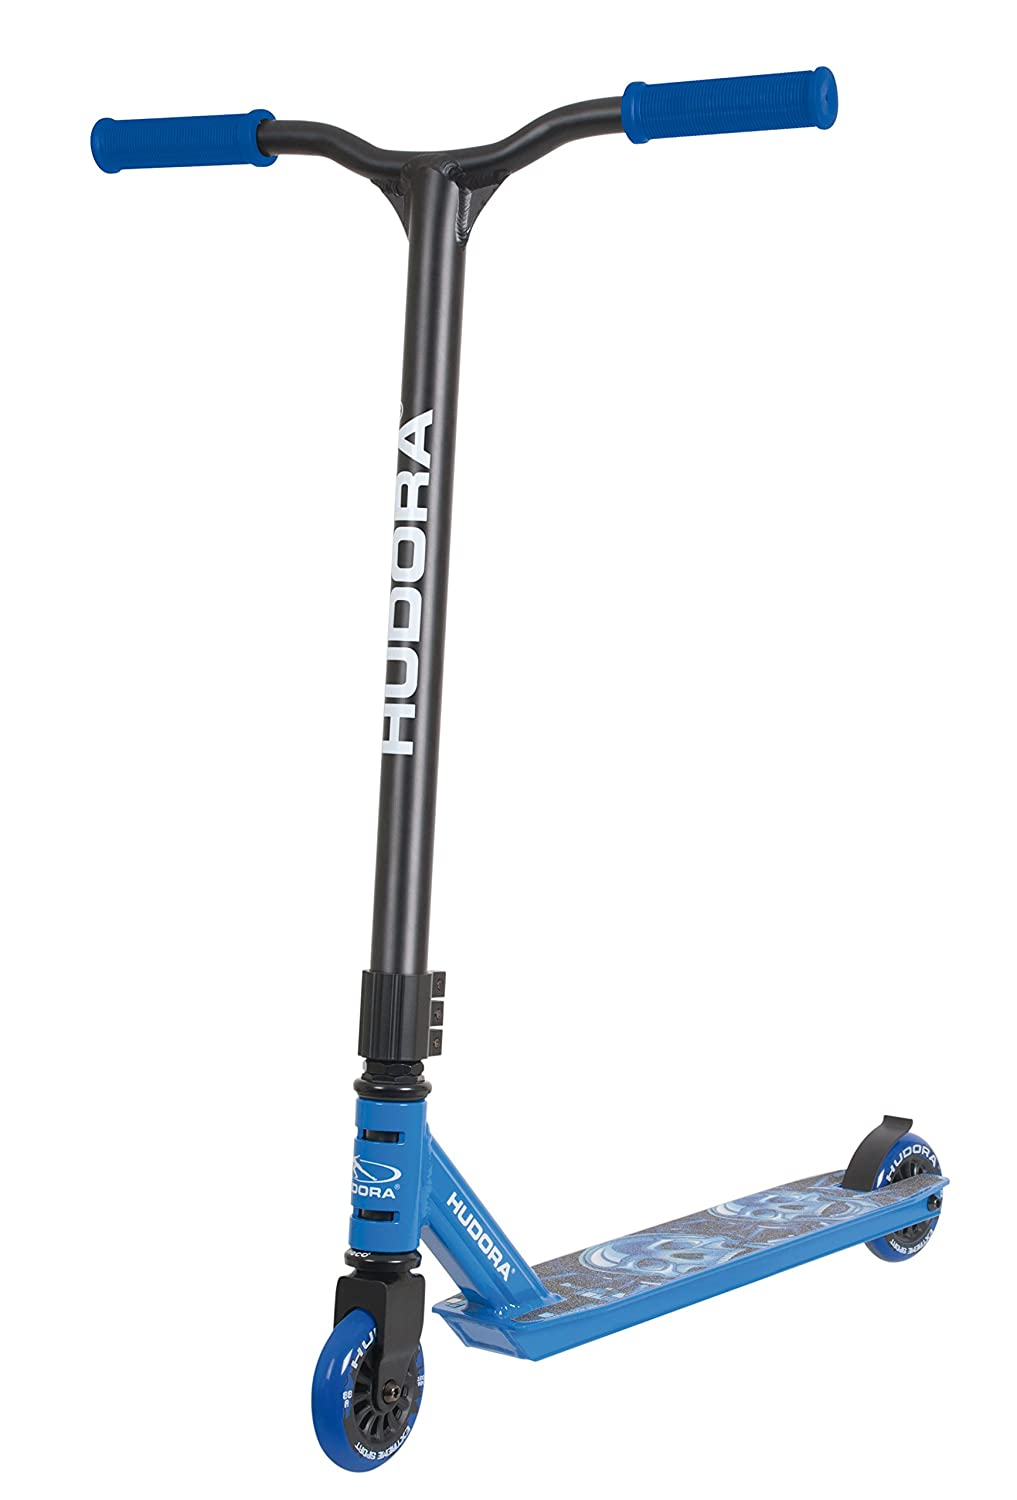 Hudora 14025 Scooter - Scooters (Kids/Adults, Negro, Azul)